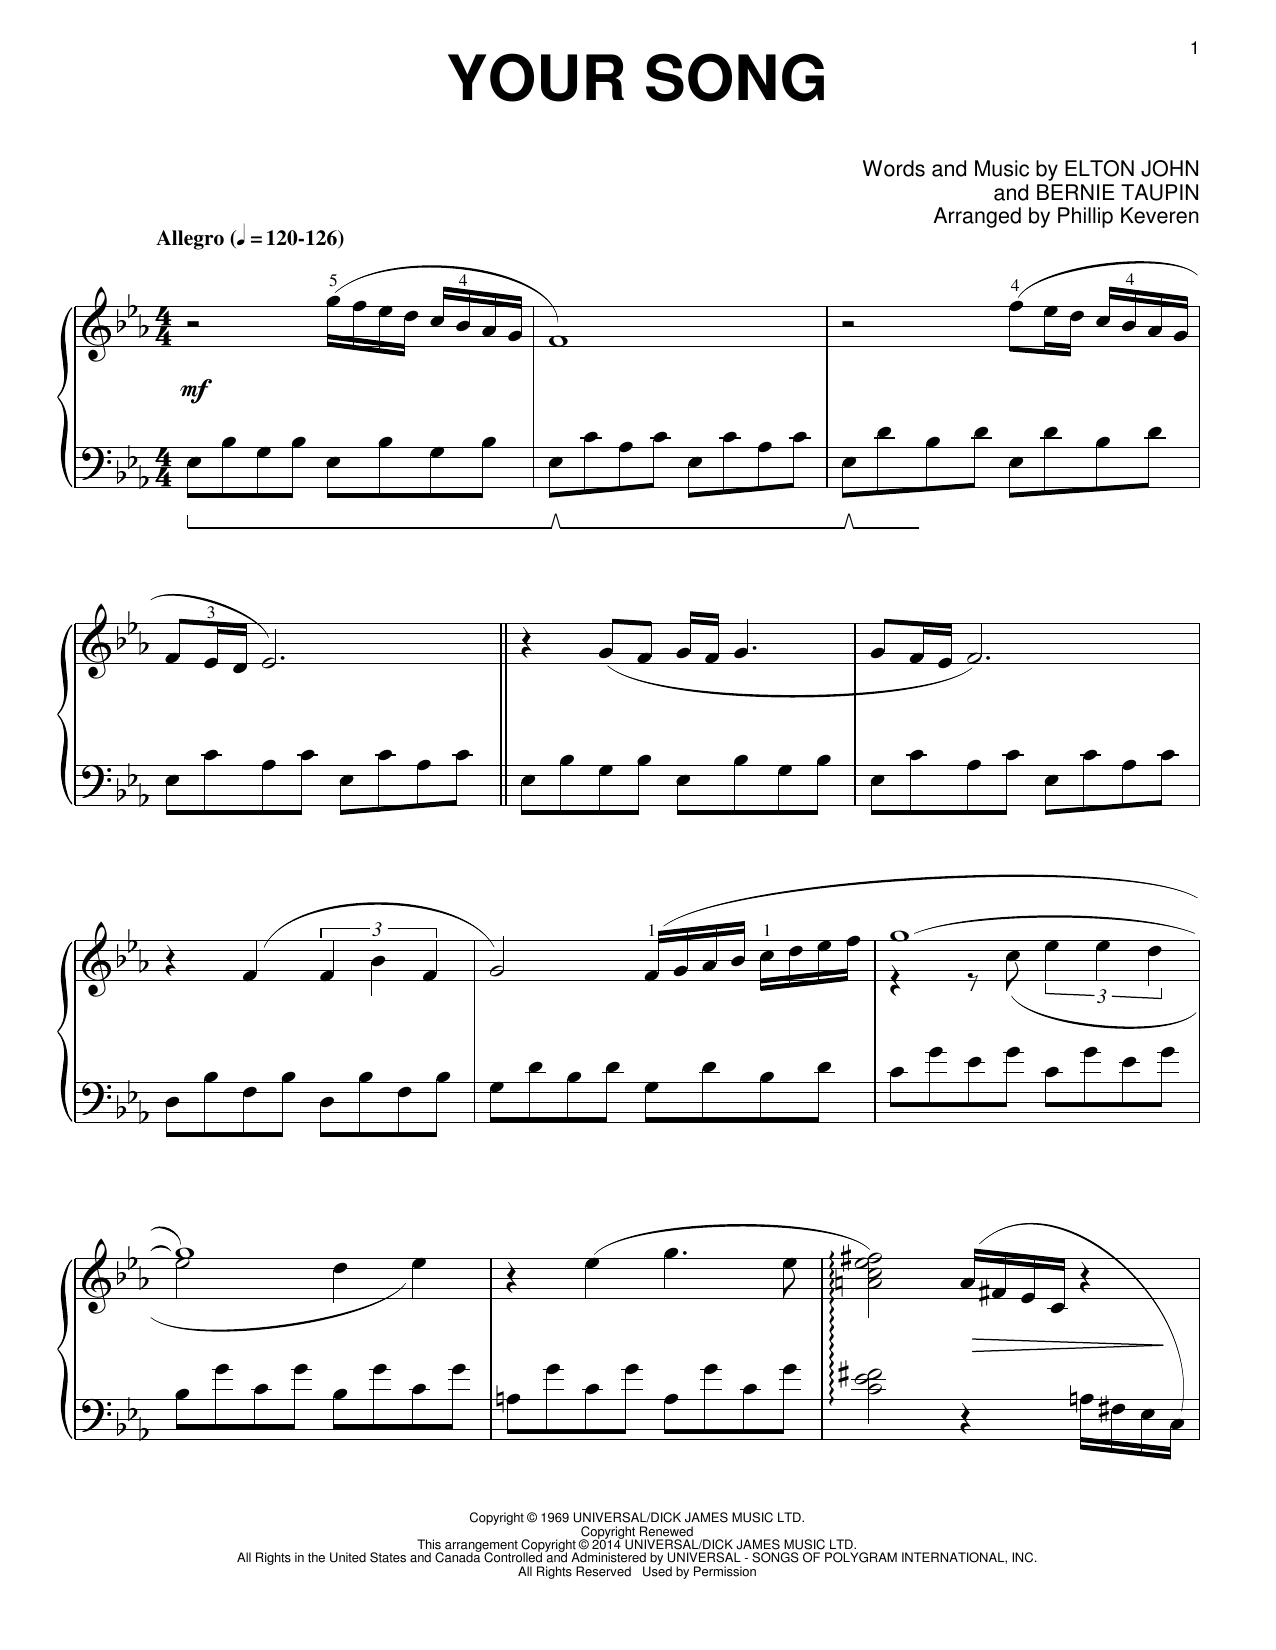 Elton John Your Song [Classical version] (arr. Phillip Keveren) sheet music notes and chords